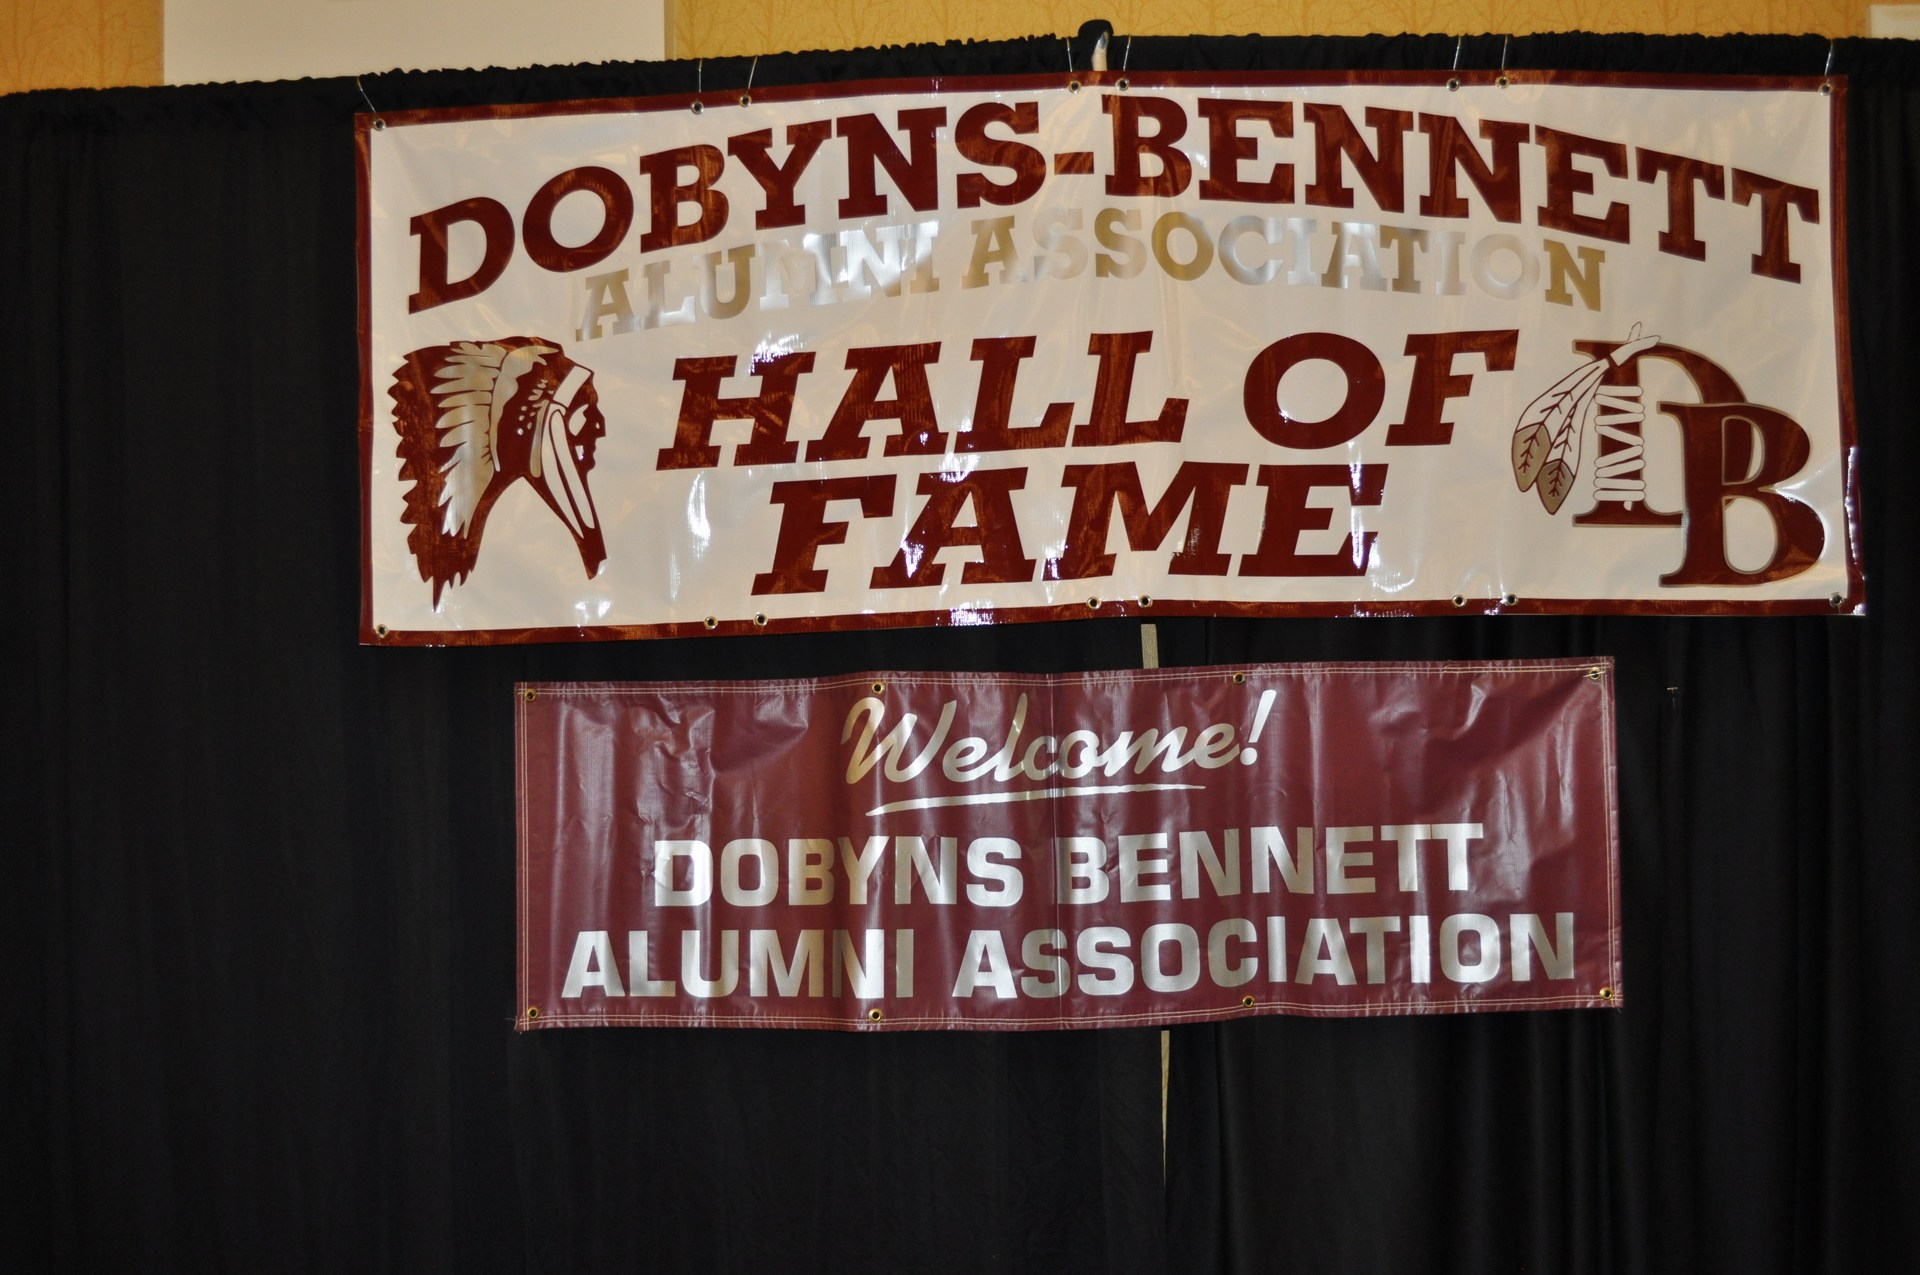 2016 DBHS Alumni Hall of Fame Induction Ceremony